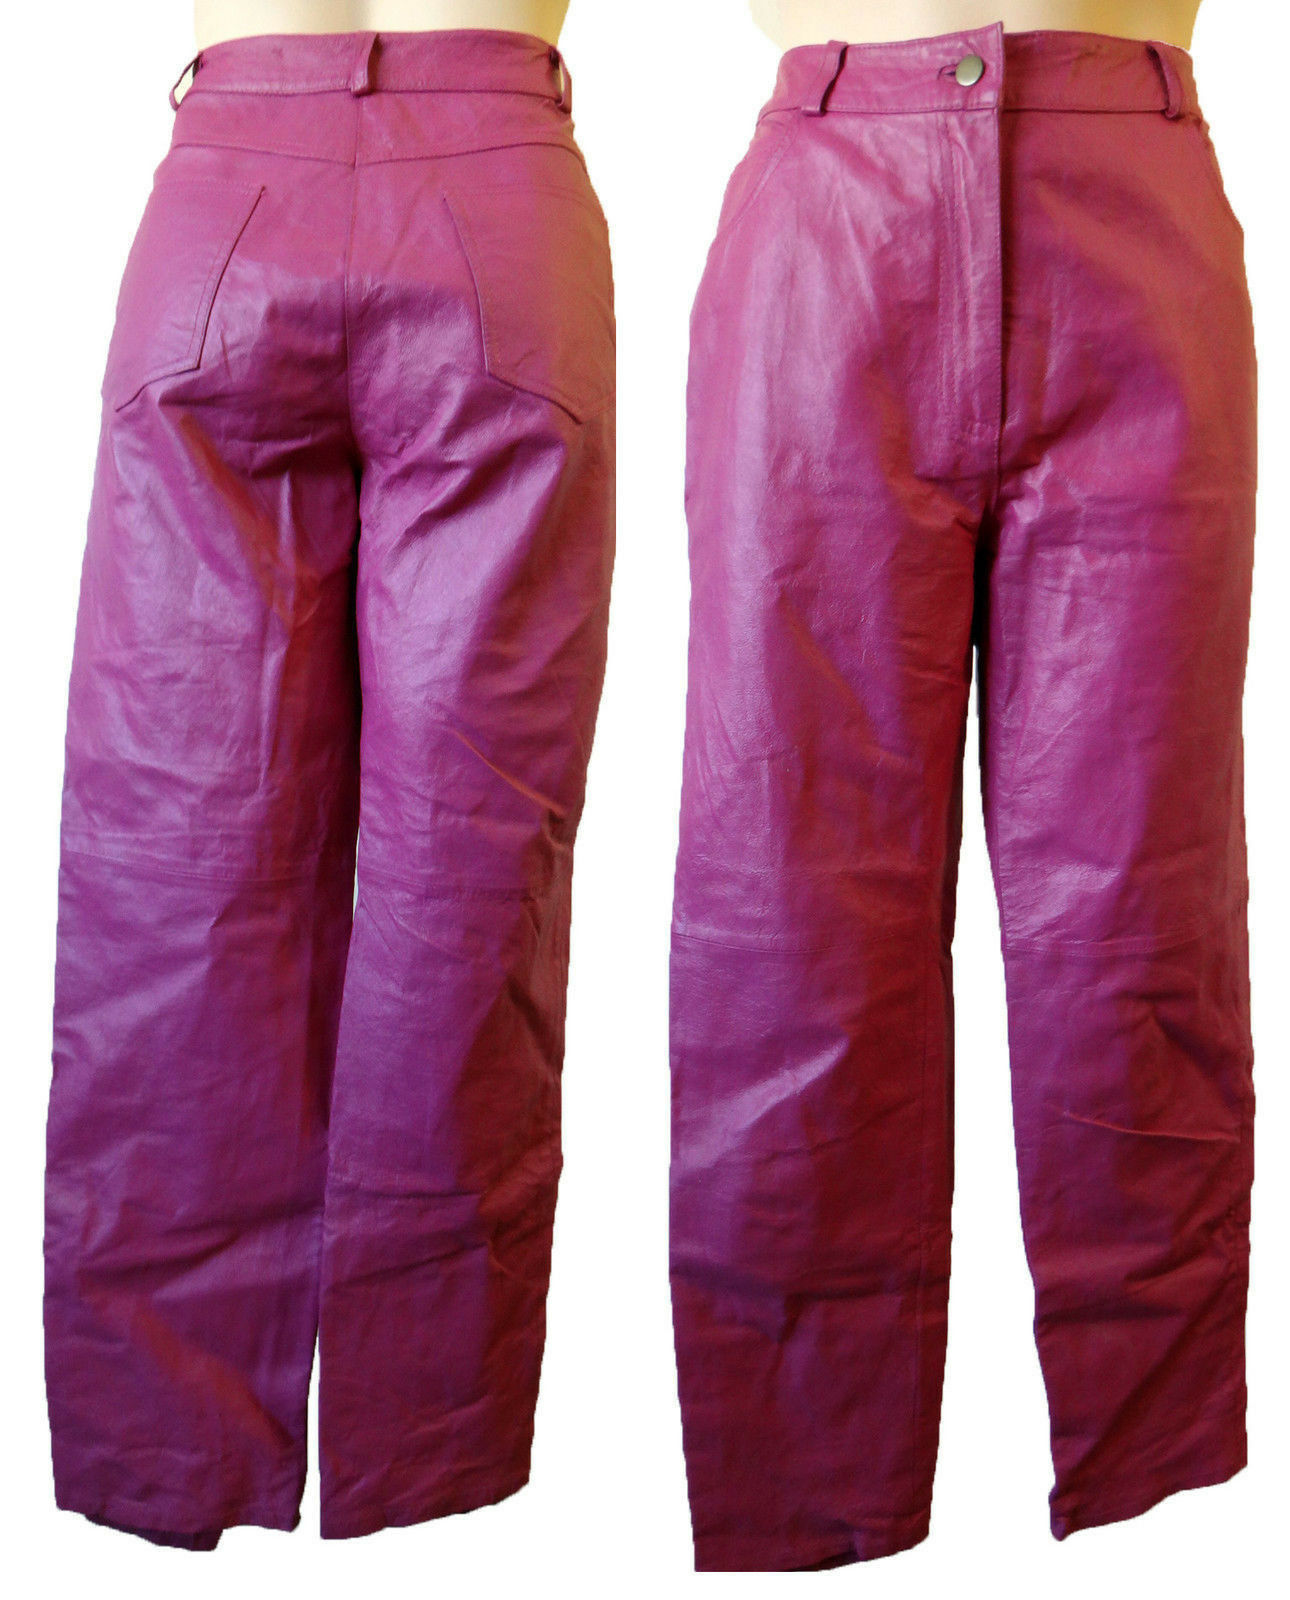 PINK leather jean pant 6 27 hot biker ladies pant motorcycle scooter punk